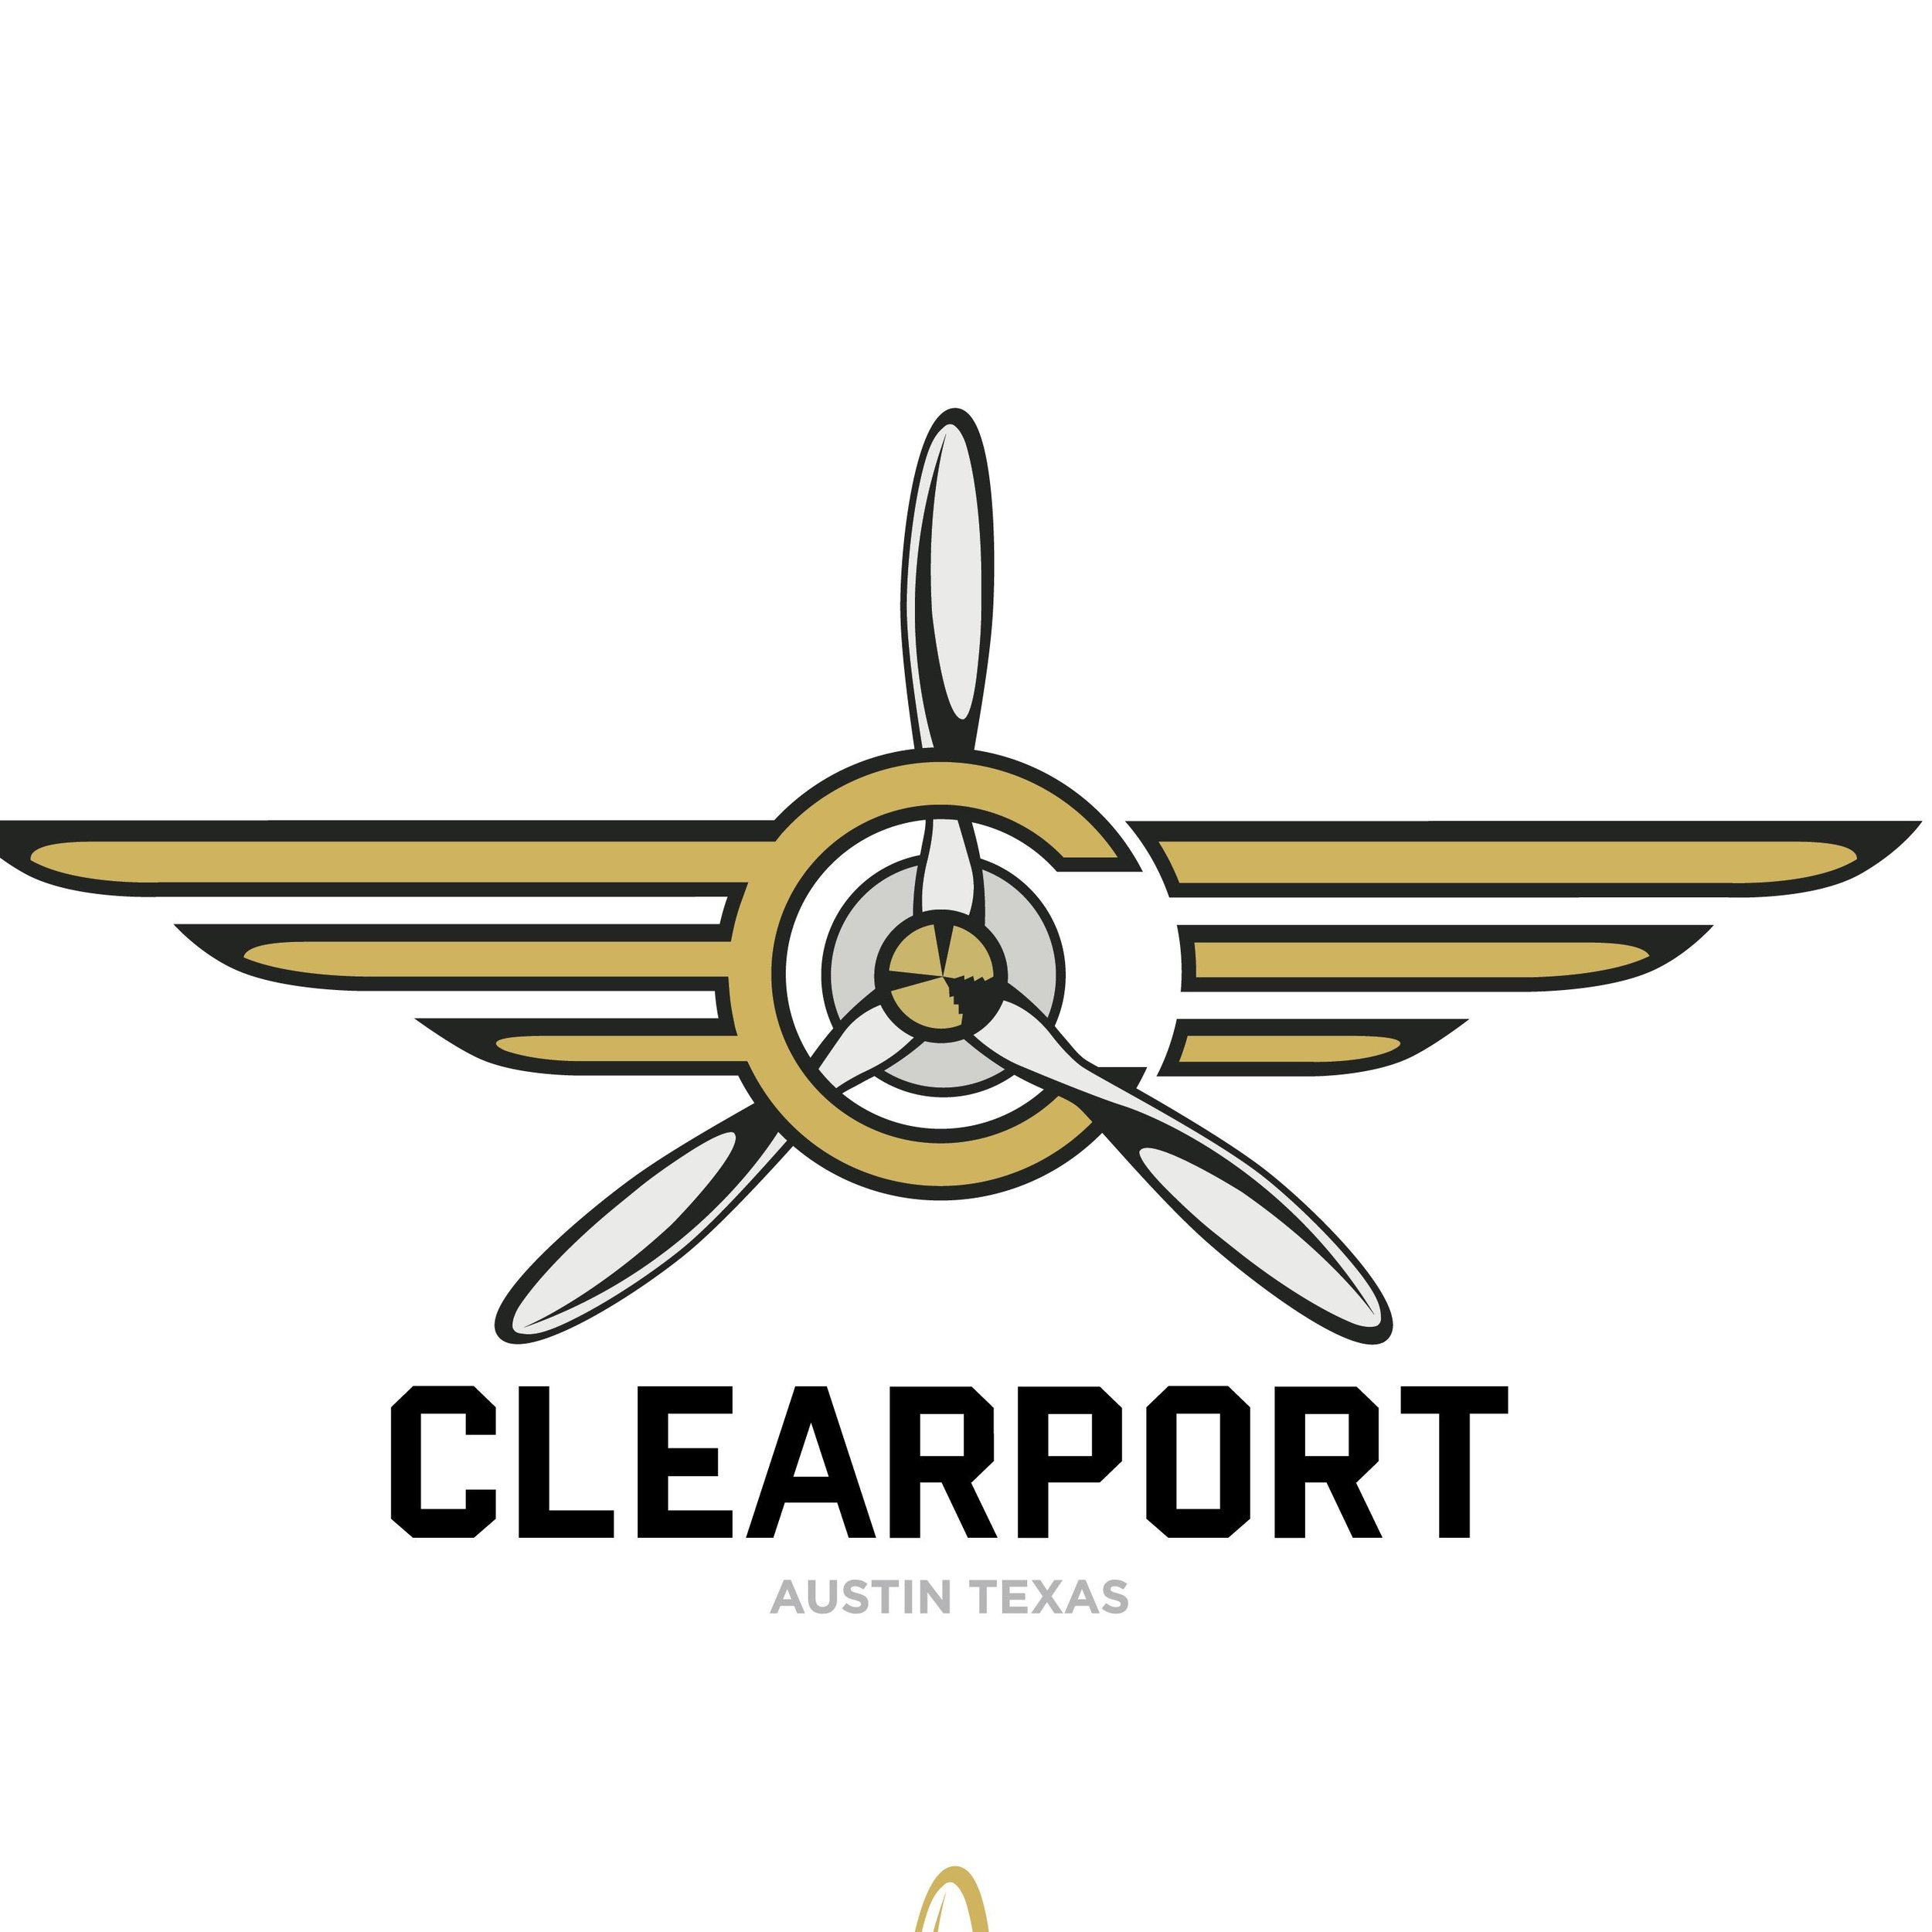 Clearport